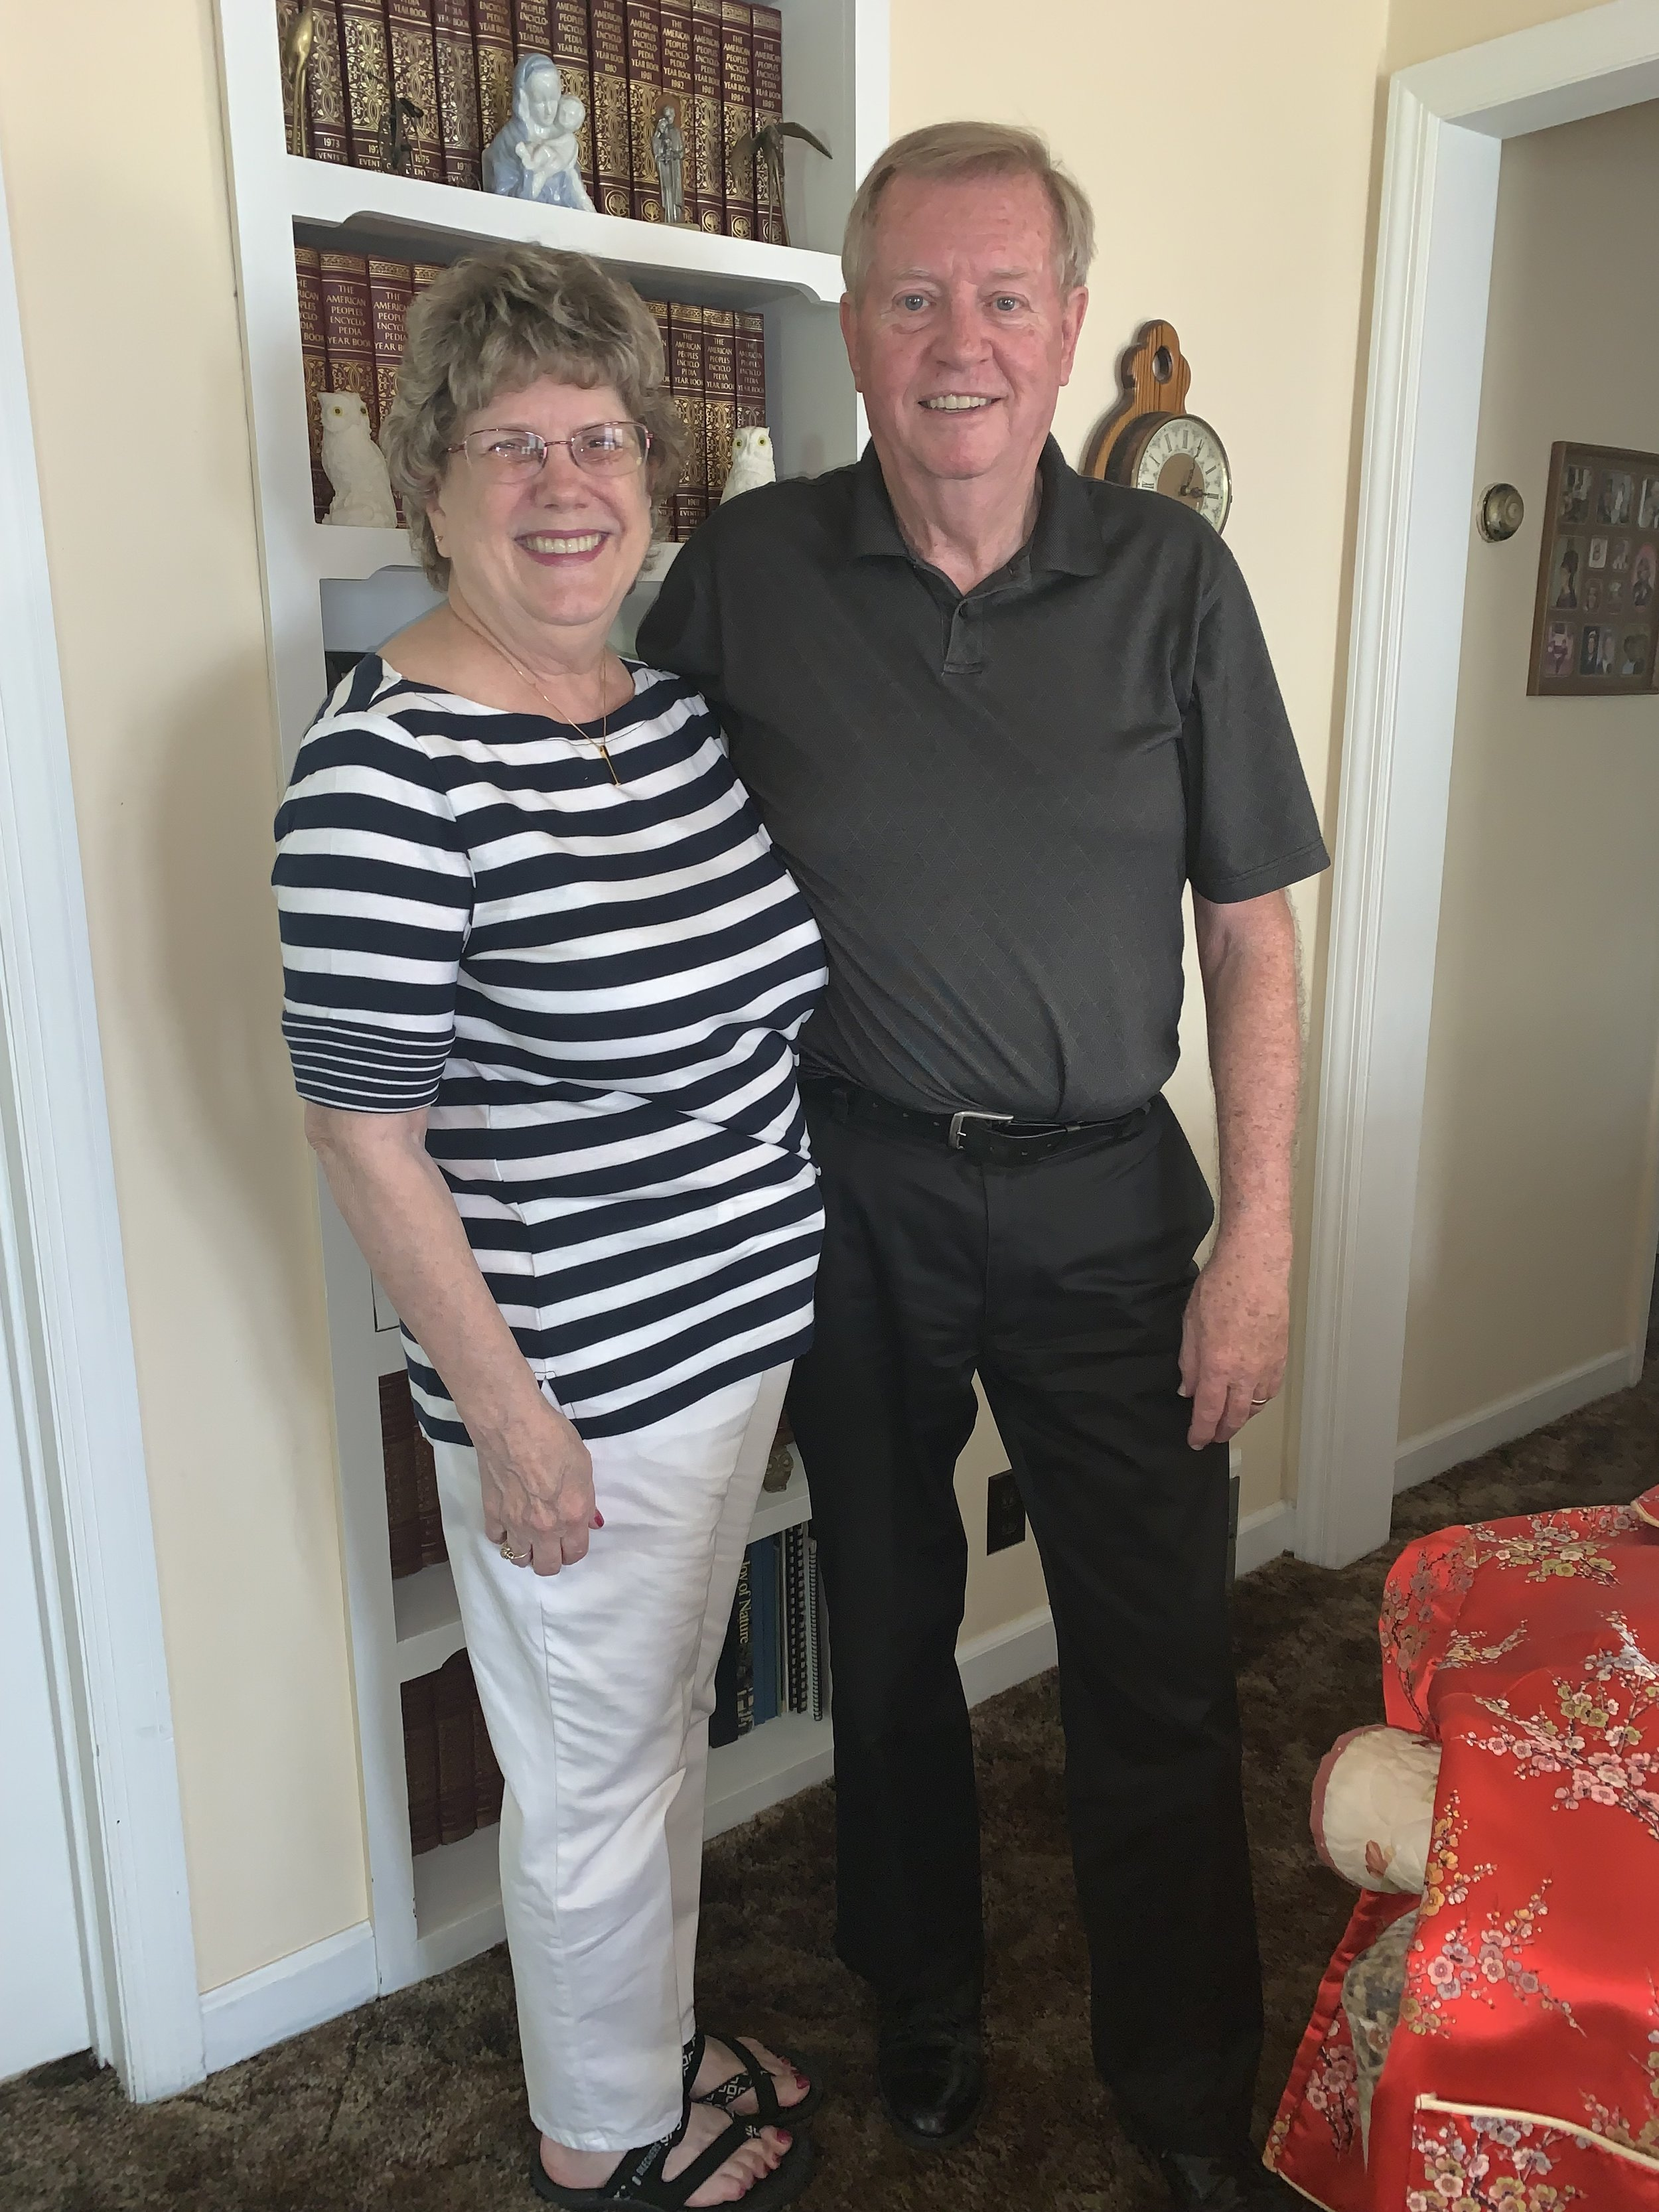 Mary and Jerry Ford smile for a picture in their home. The couple has been married now for 53 years.  Photo submitted by Allie Jennerjahn